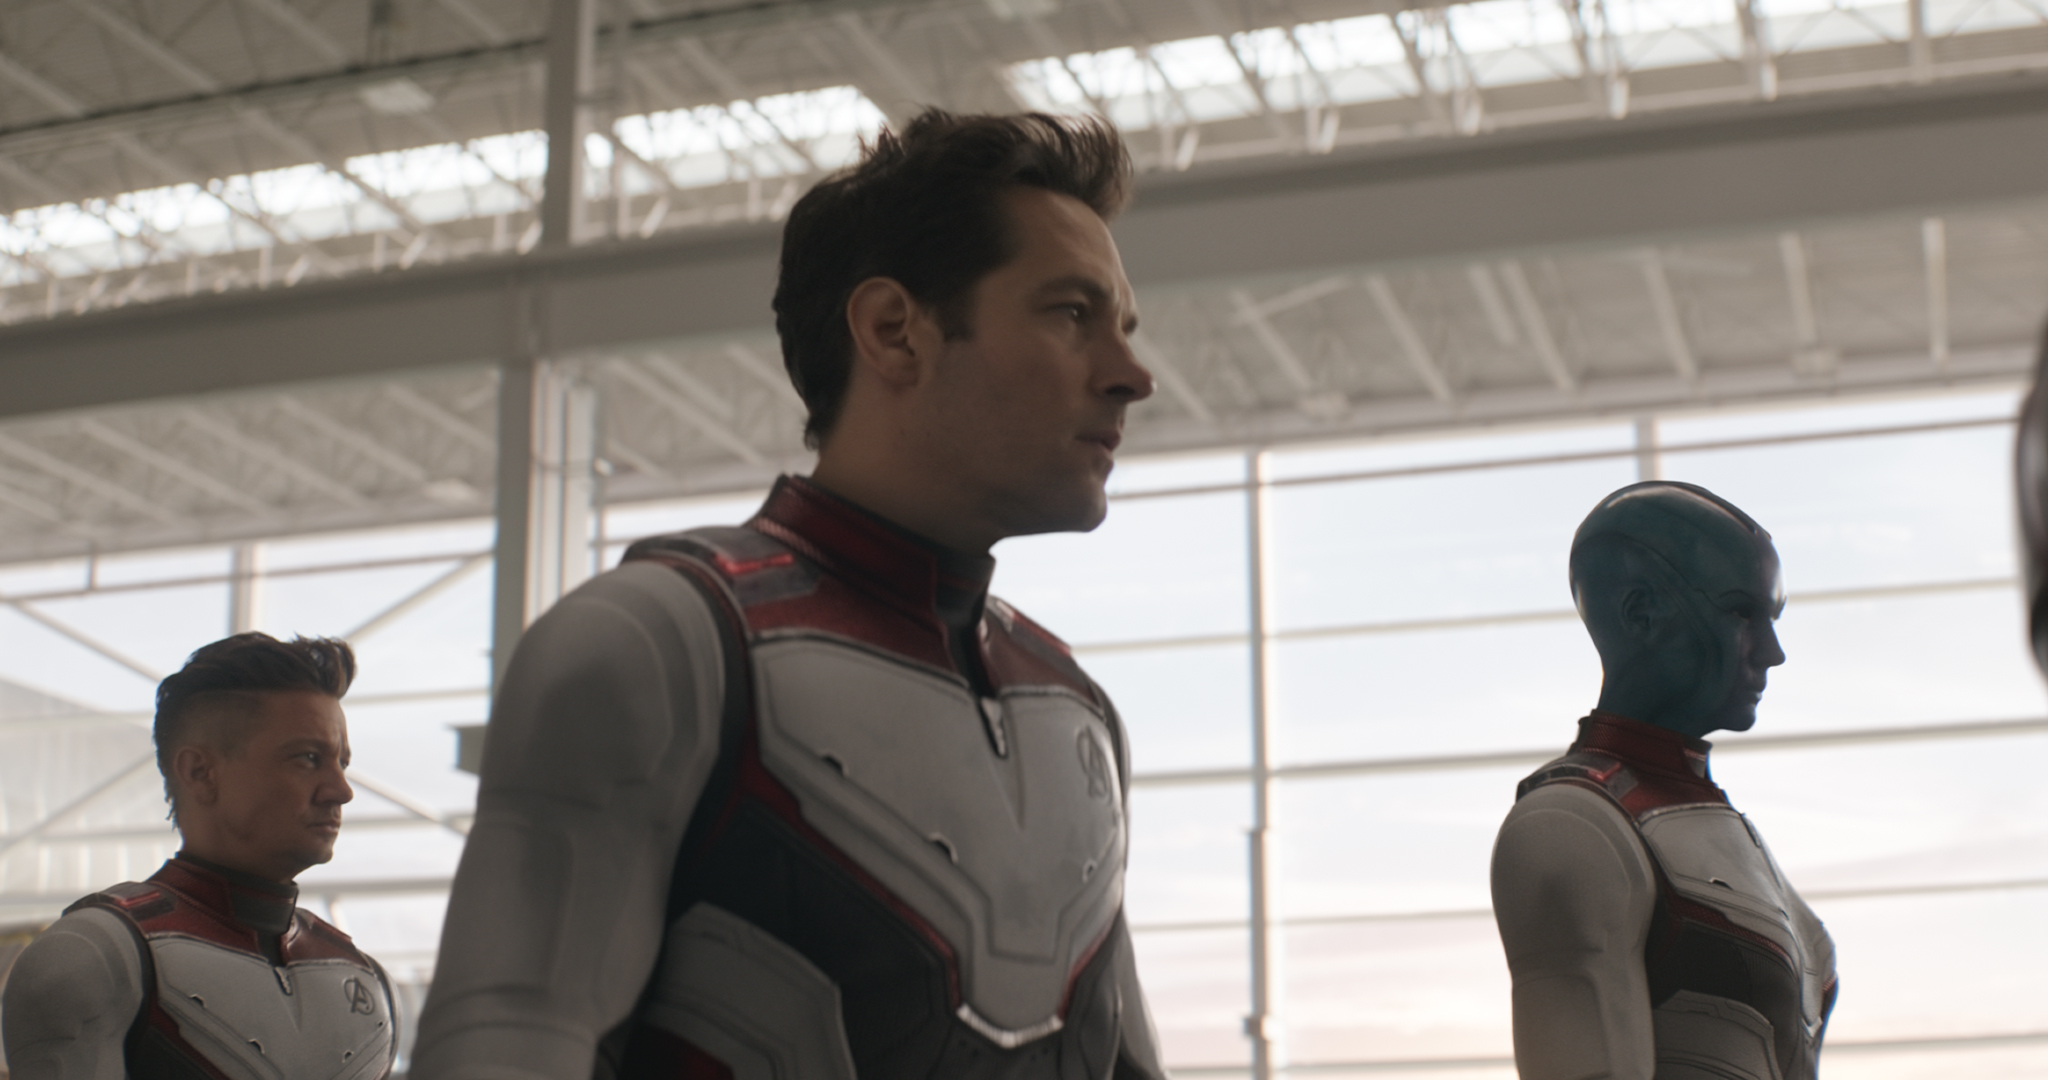 Avengers: Endgame's confusing timeline actually makes sense — here's why